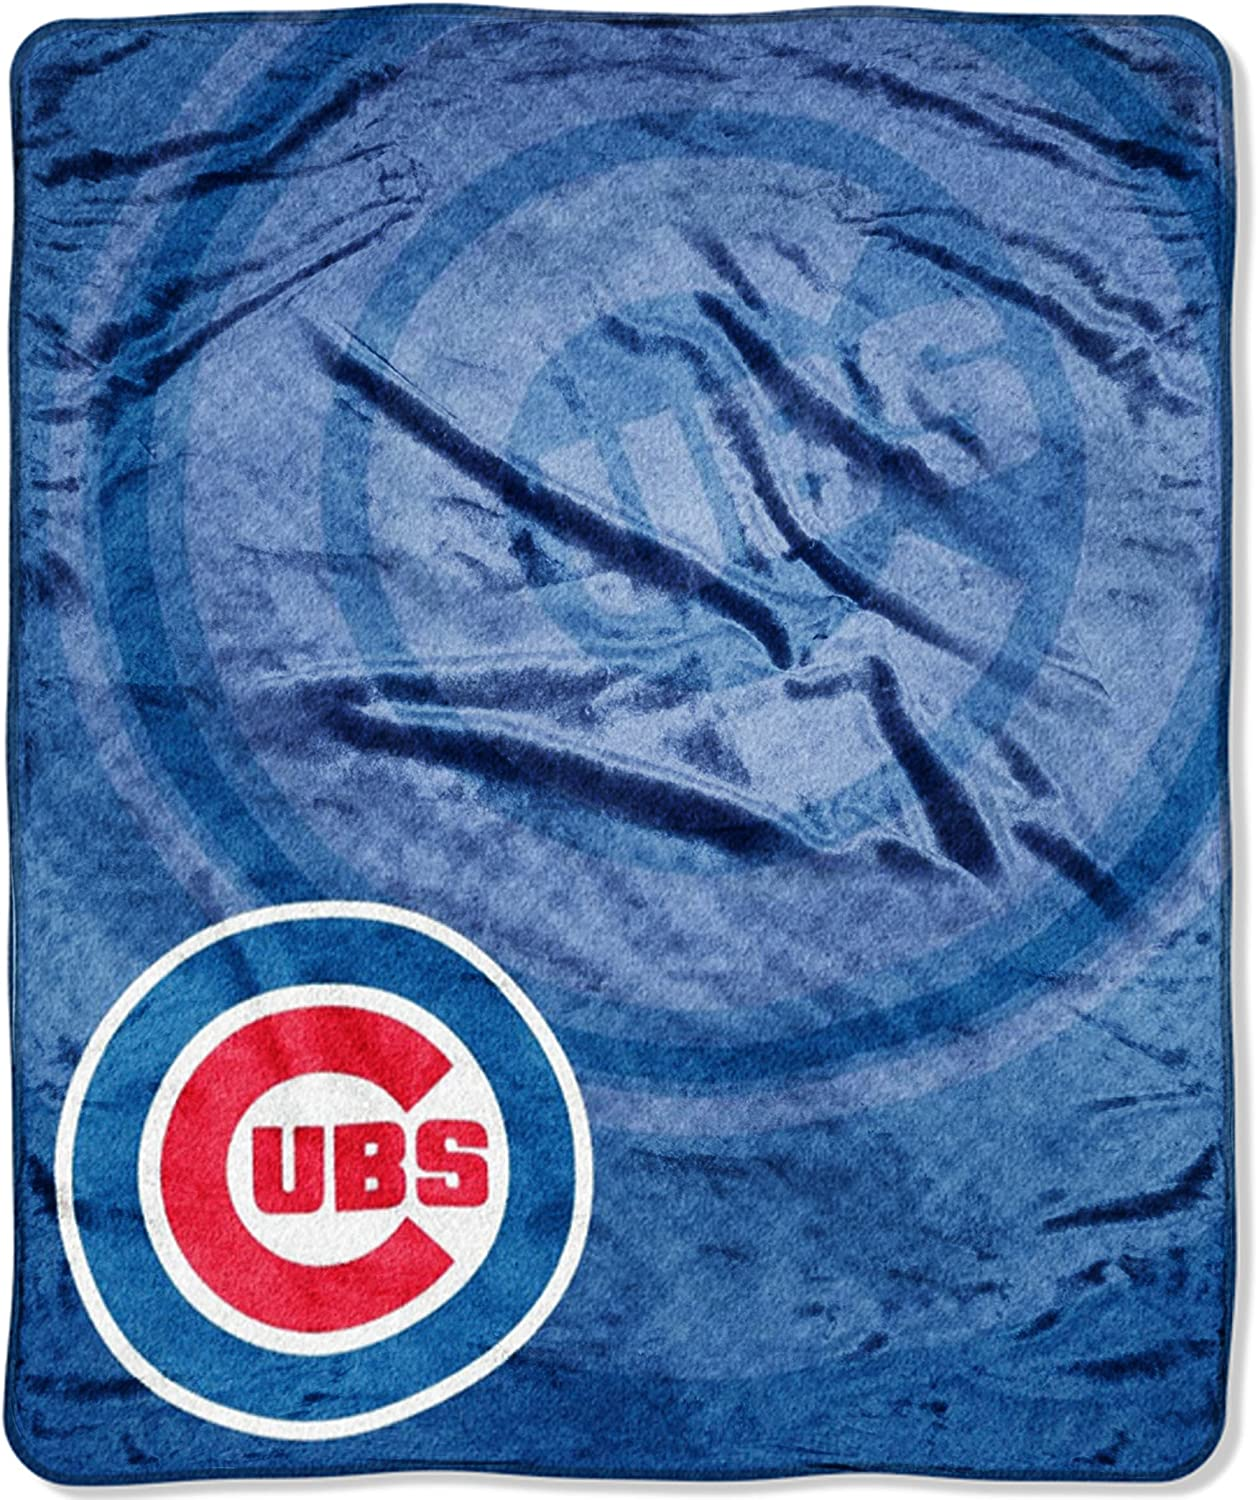 50 x 60 Throws /& Bedding Soft /& Cozy Washable Officially Licensed MLB Retro Raschel Throw Blanket